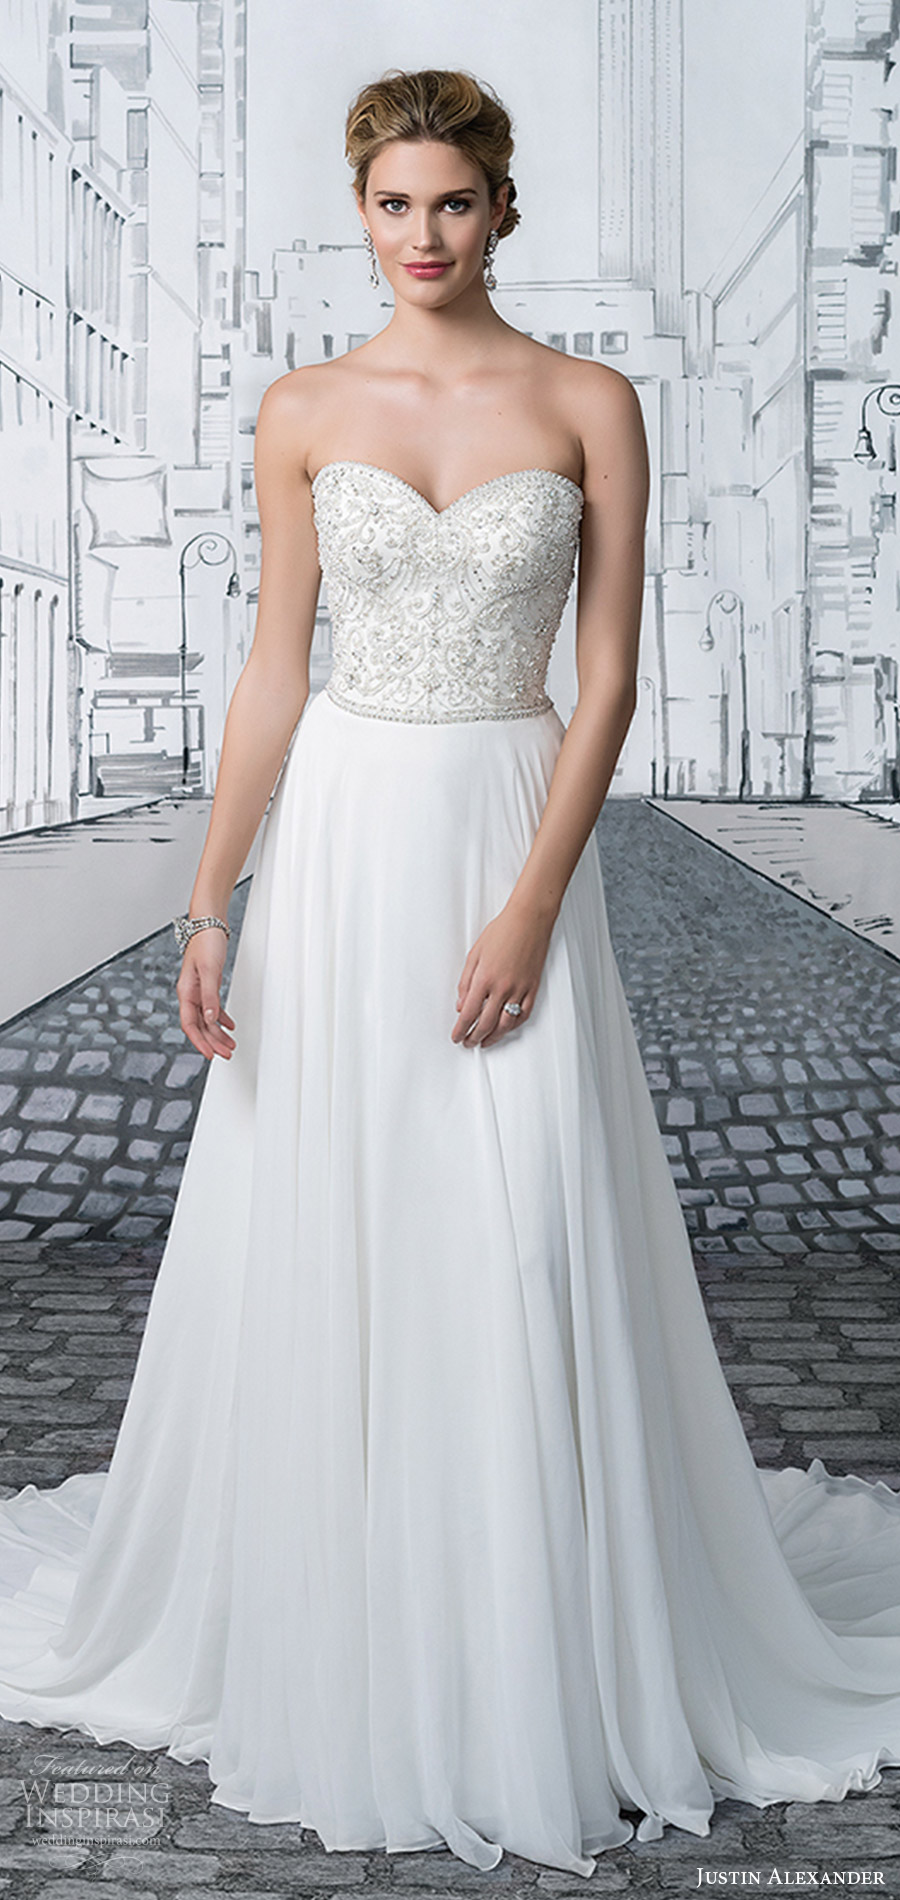 justin alexander spring 2017 (8895) strapless sweetheart beaded bodice soft a line wedding dress mv